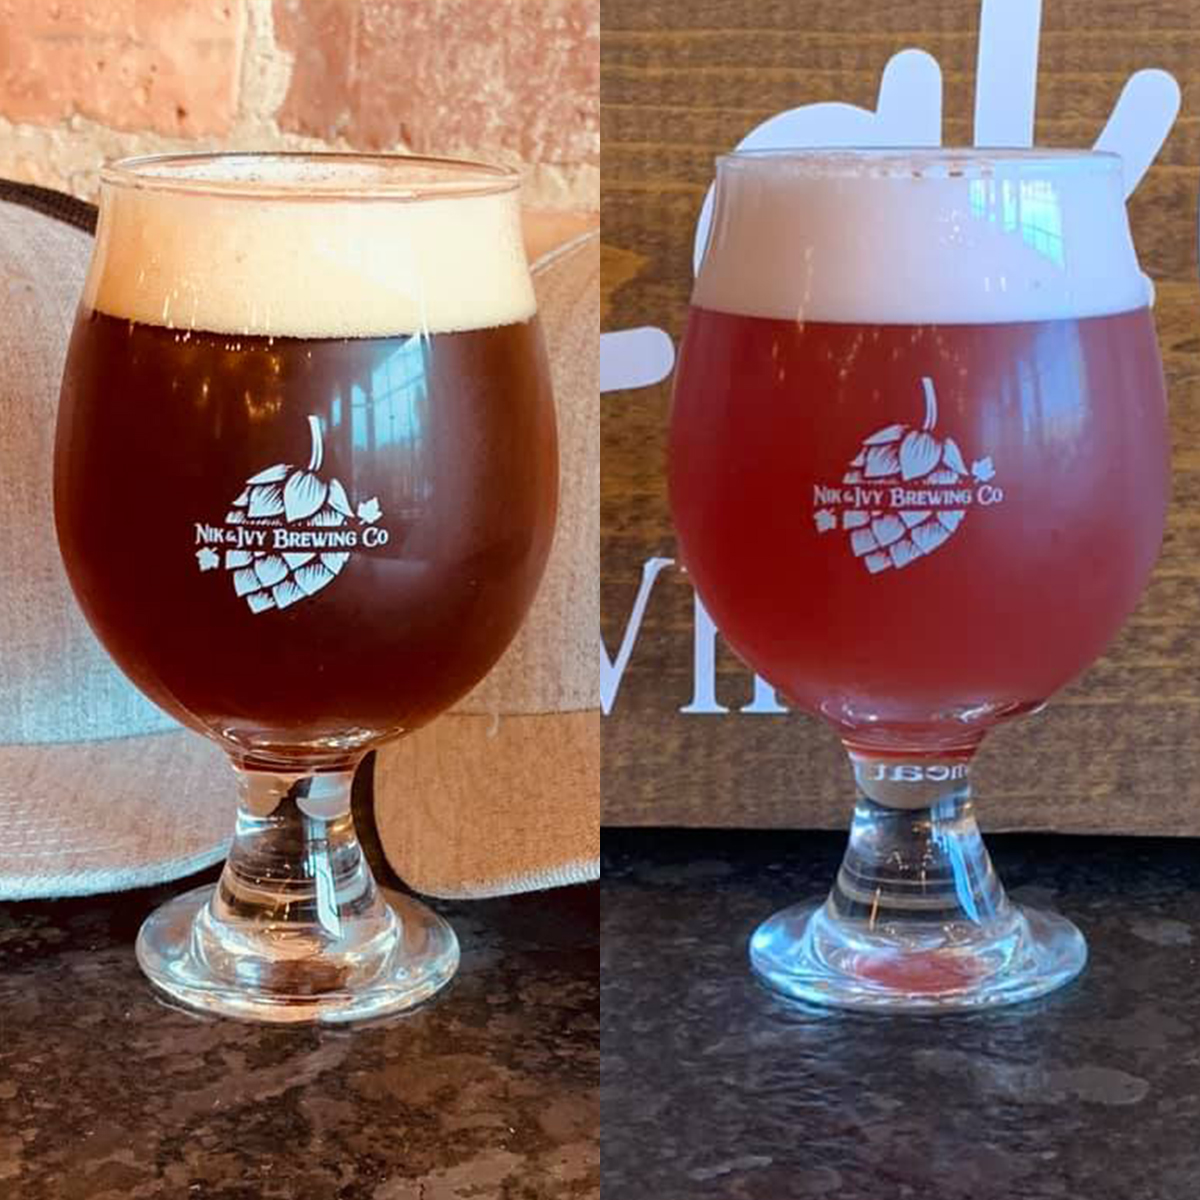 Two brews from Nik and Ivy Brewing in Lockport